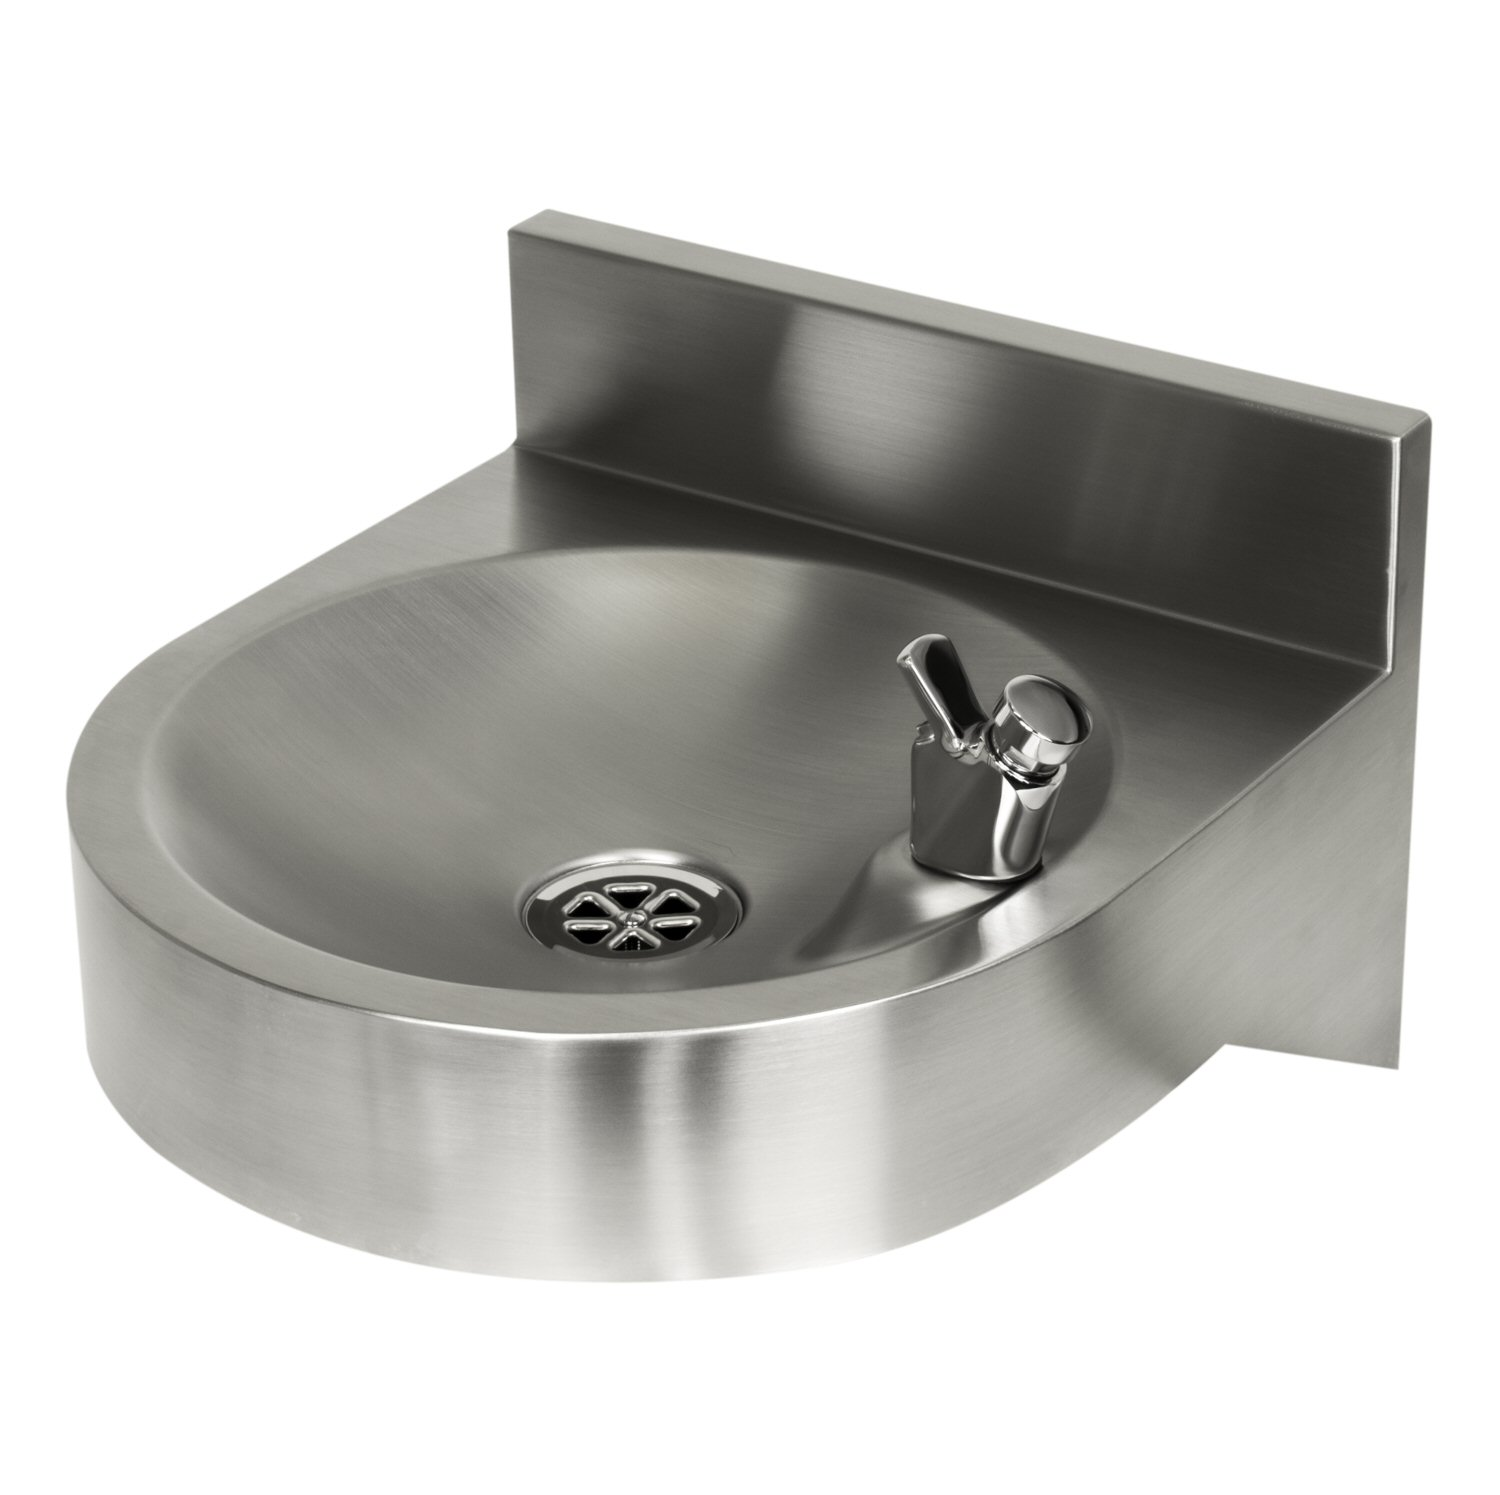 drinking fountain wall mounted stainless steel with bubbler valve tap